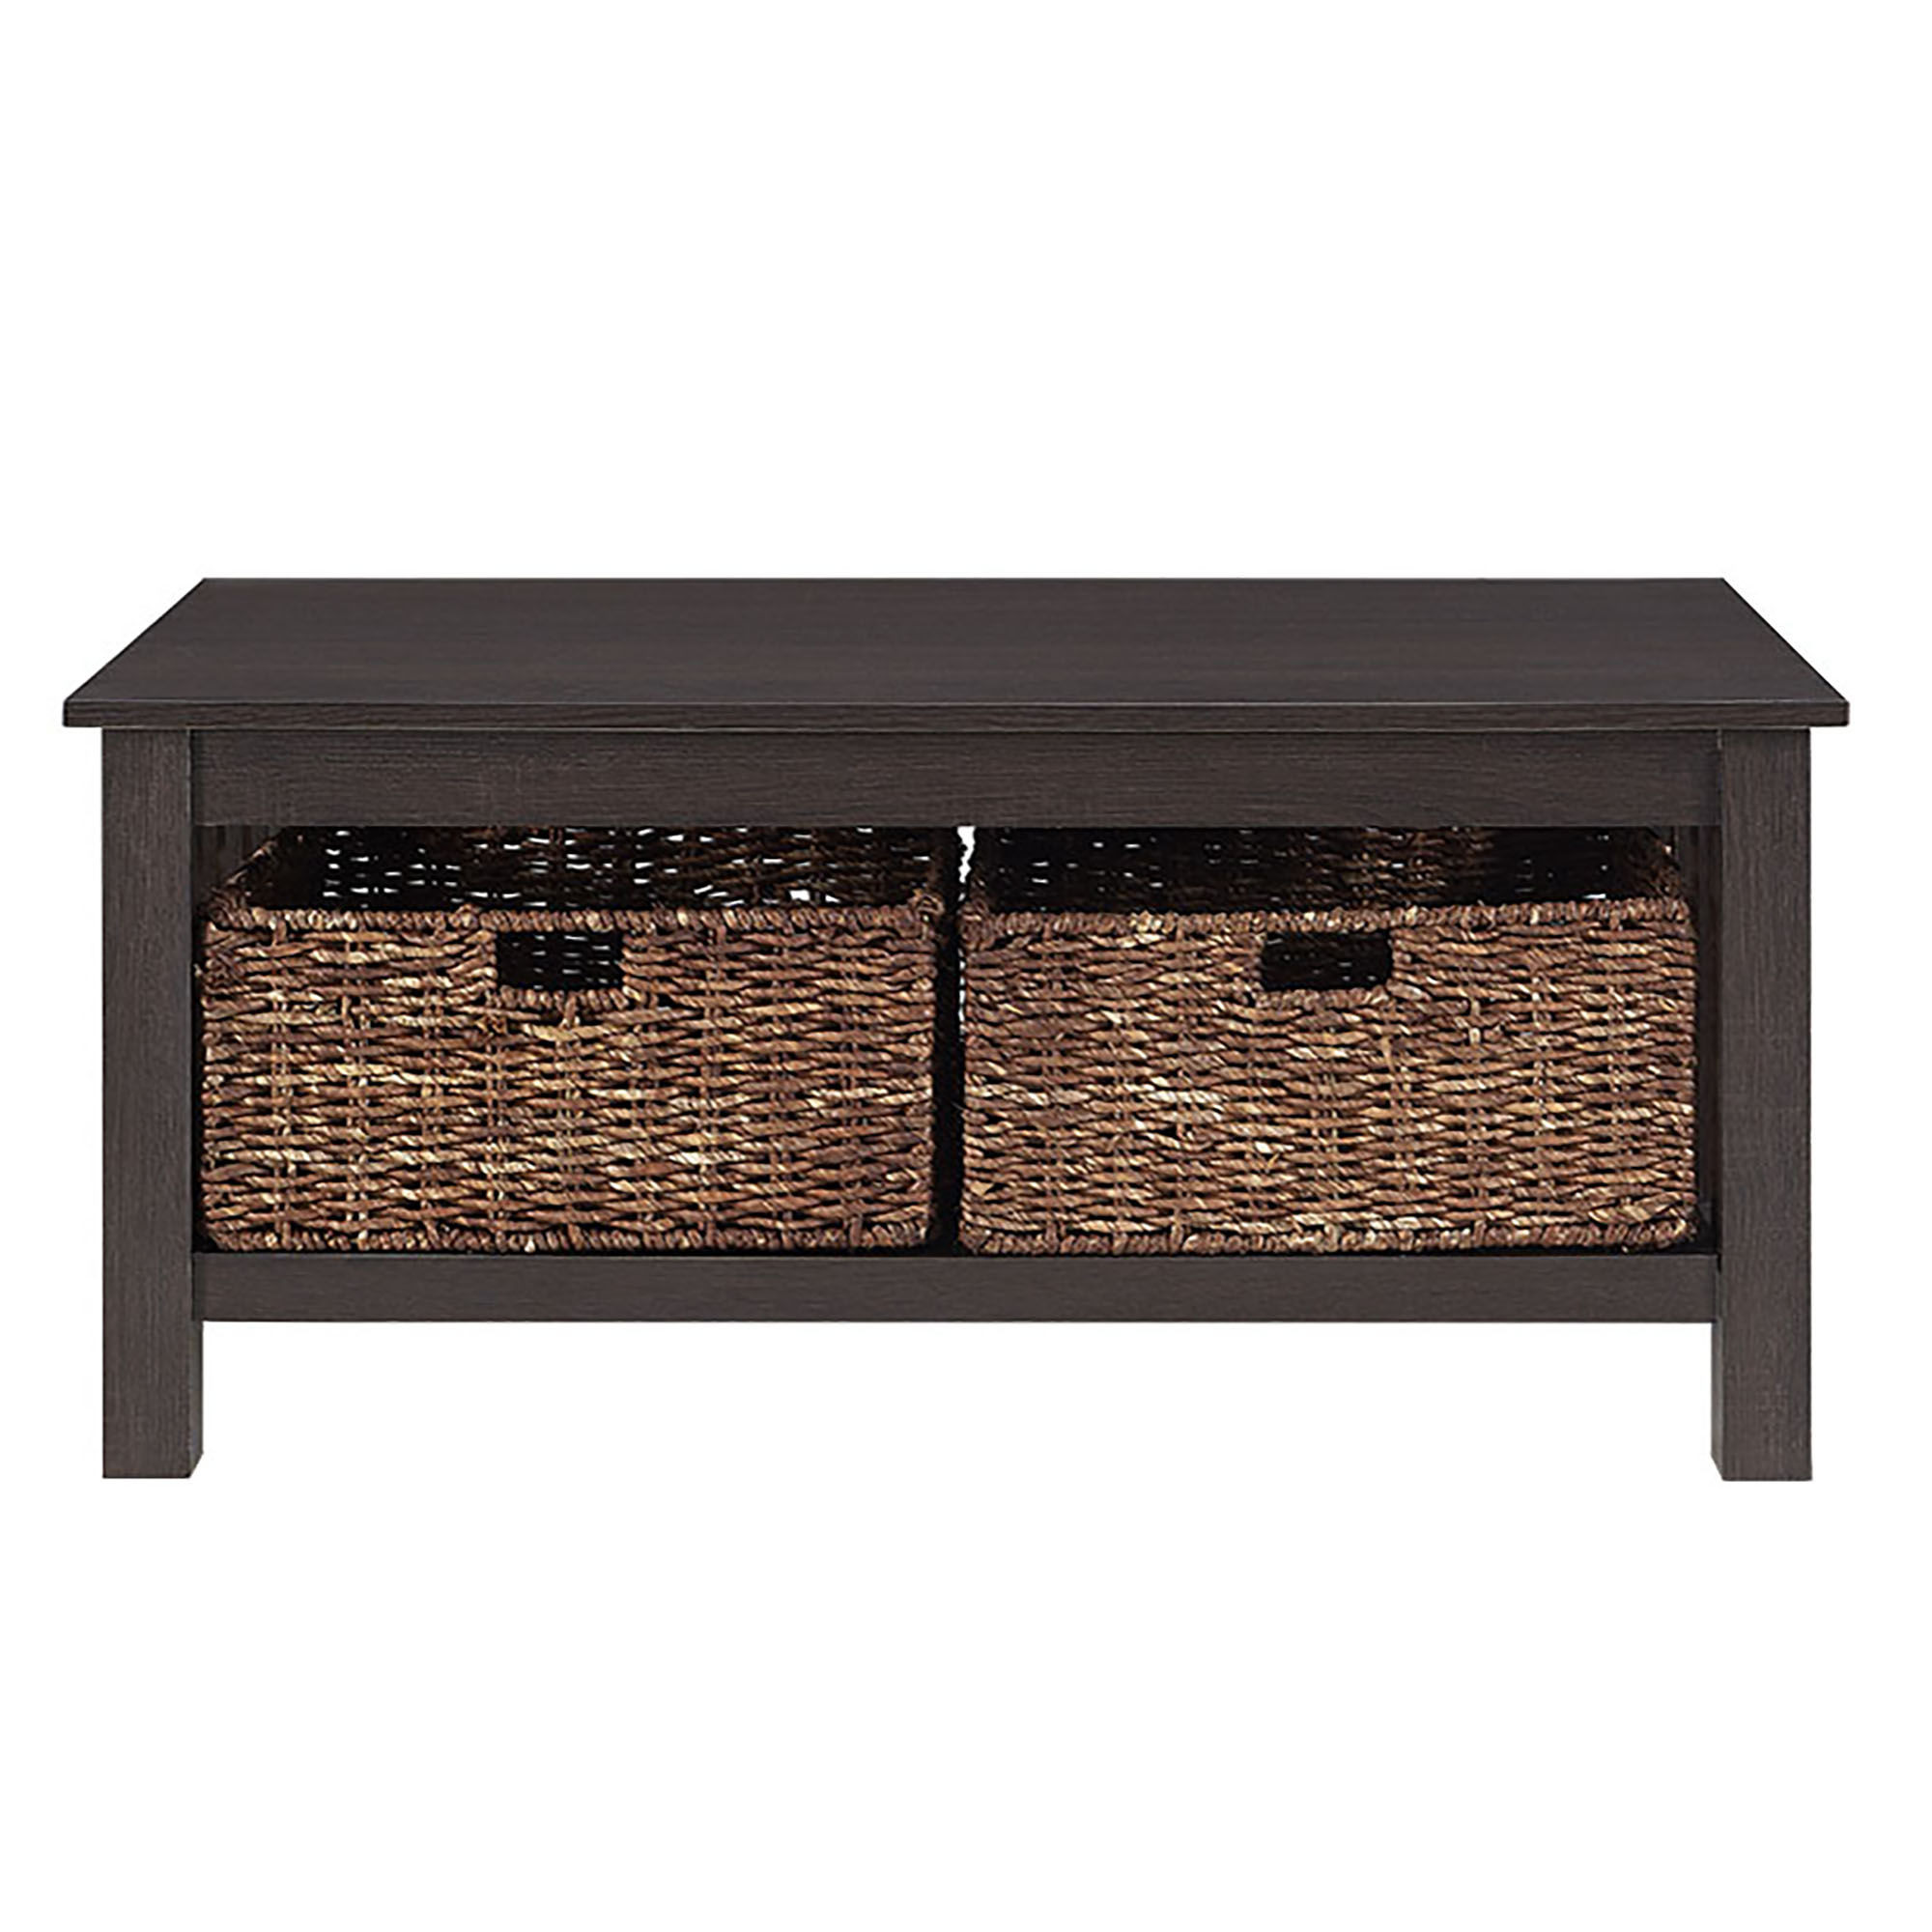 "Espresso Coffee Table With Storage: 40"" Wood Storage Coffee Table With Totes - Driftwood"